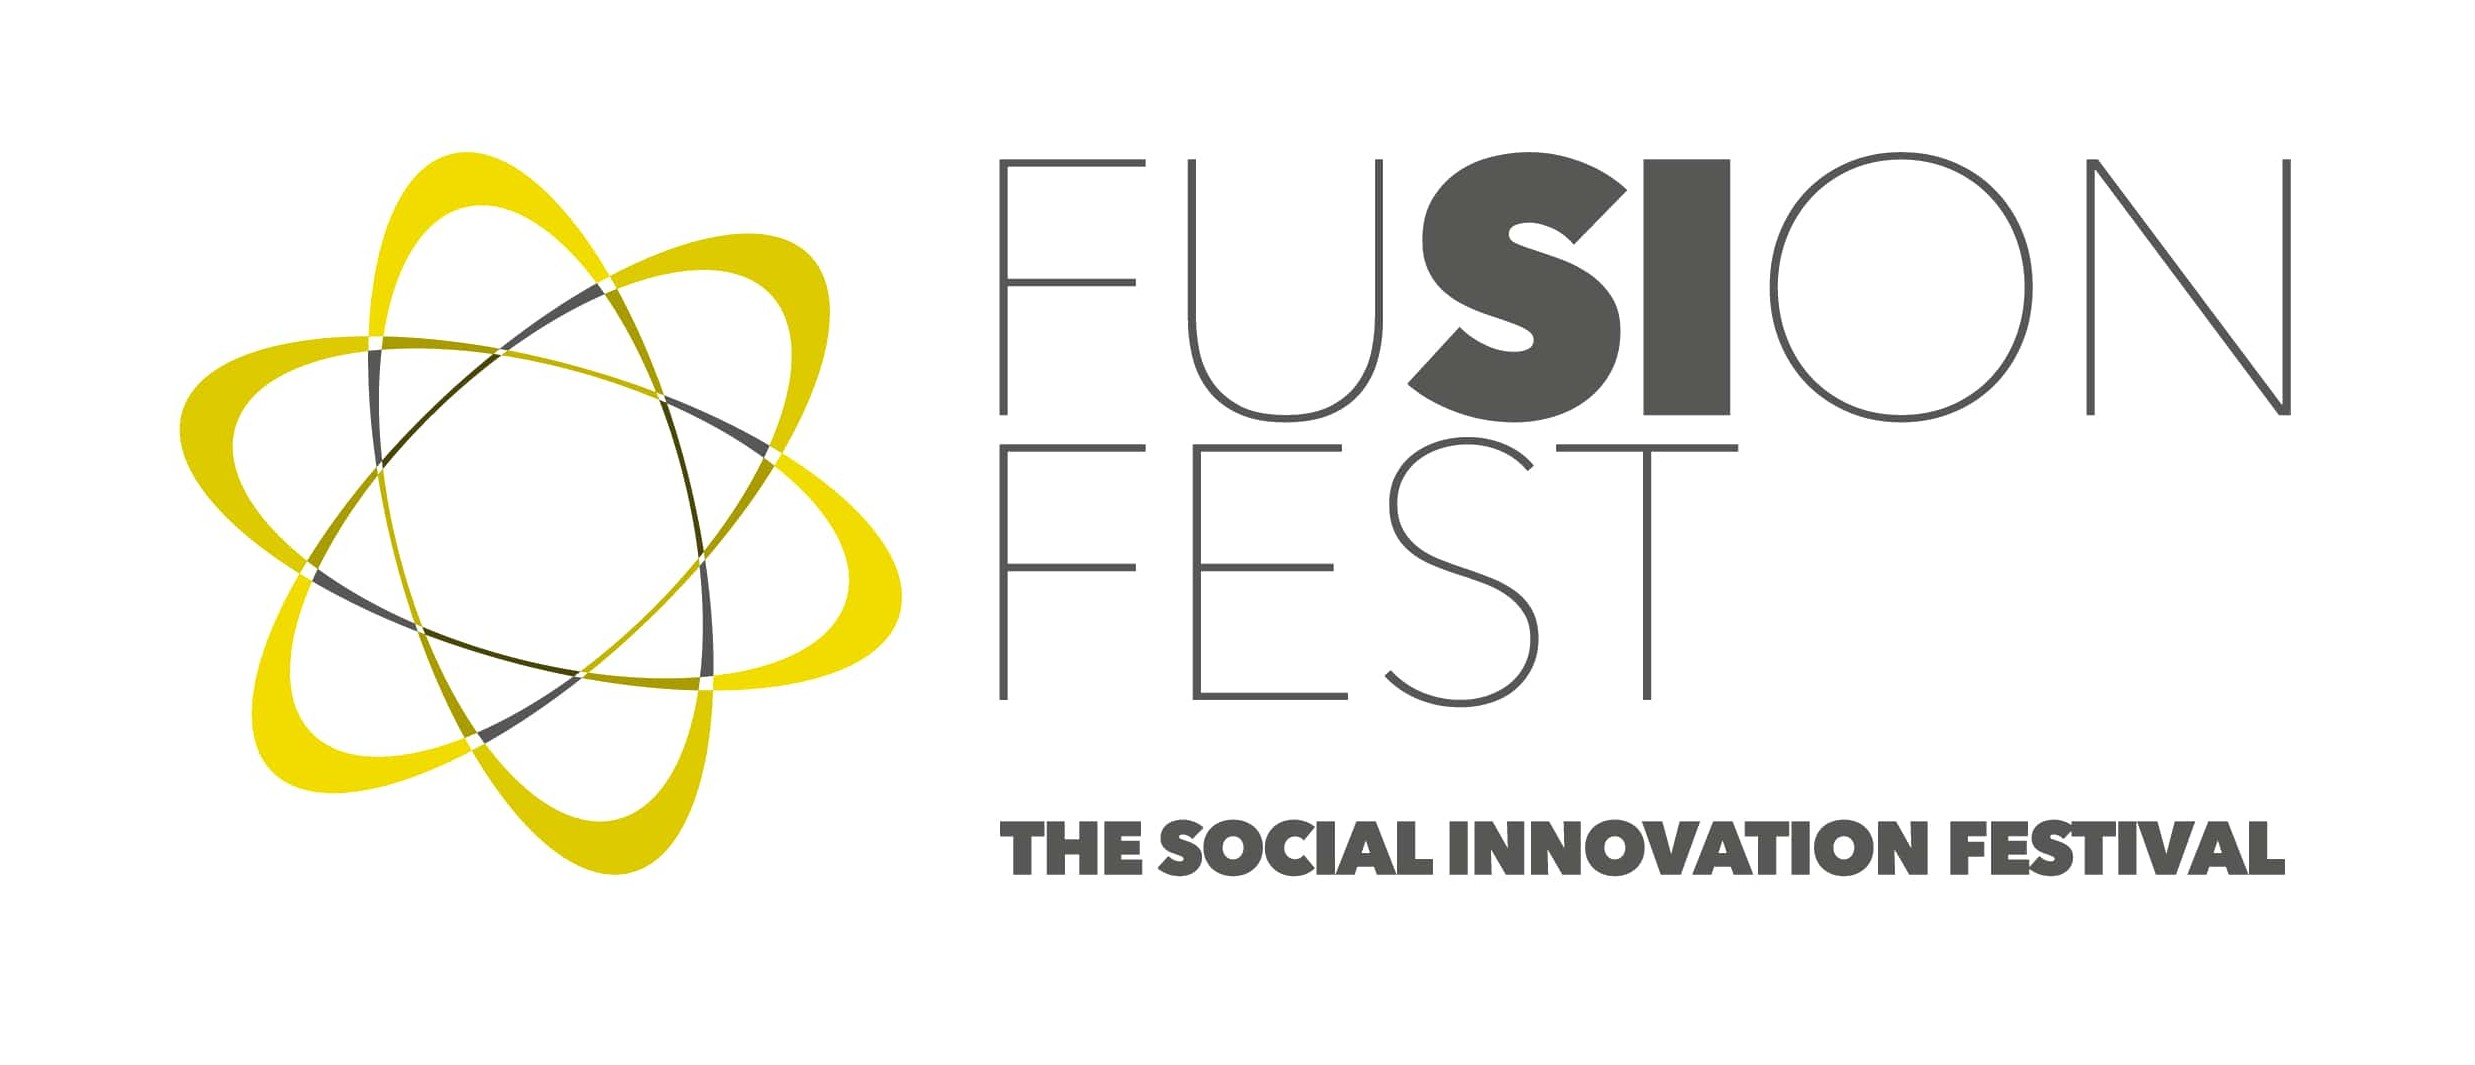 Save the Date FuSIonFest - the Social Innovation Festival